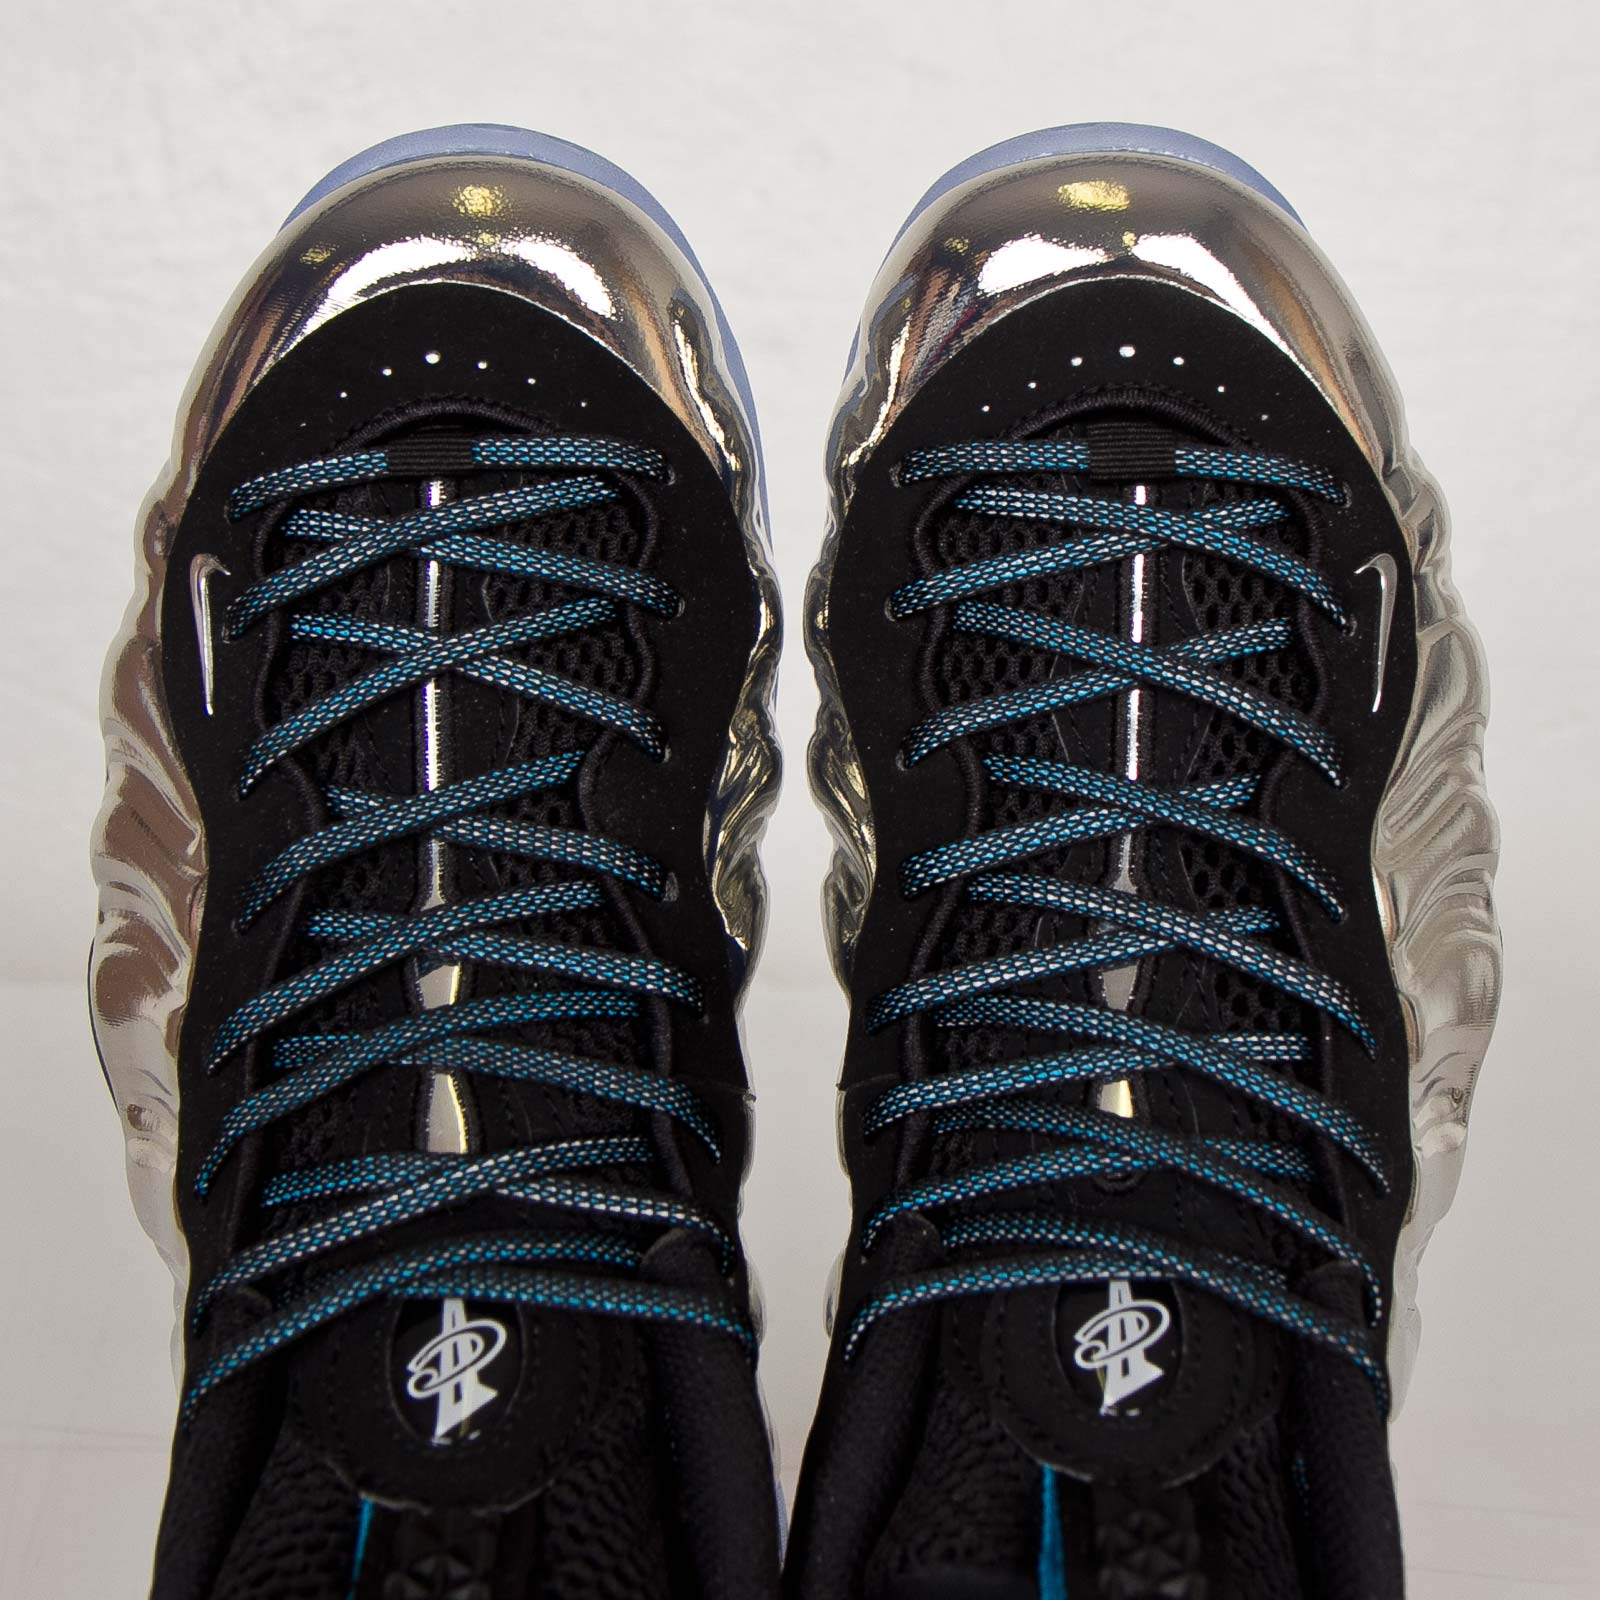 Sneaker of the Week: Nike Air Foamposite One Blue Mirror